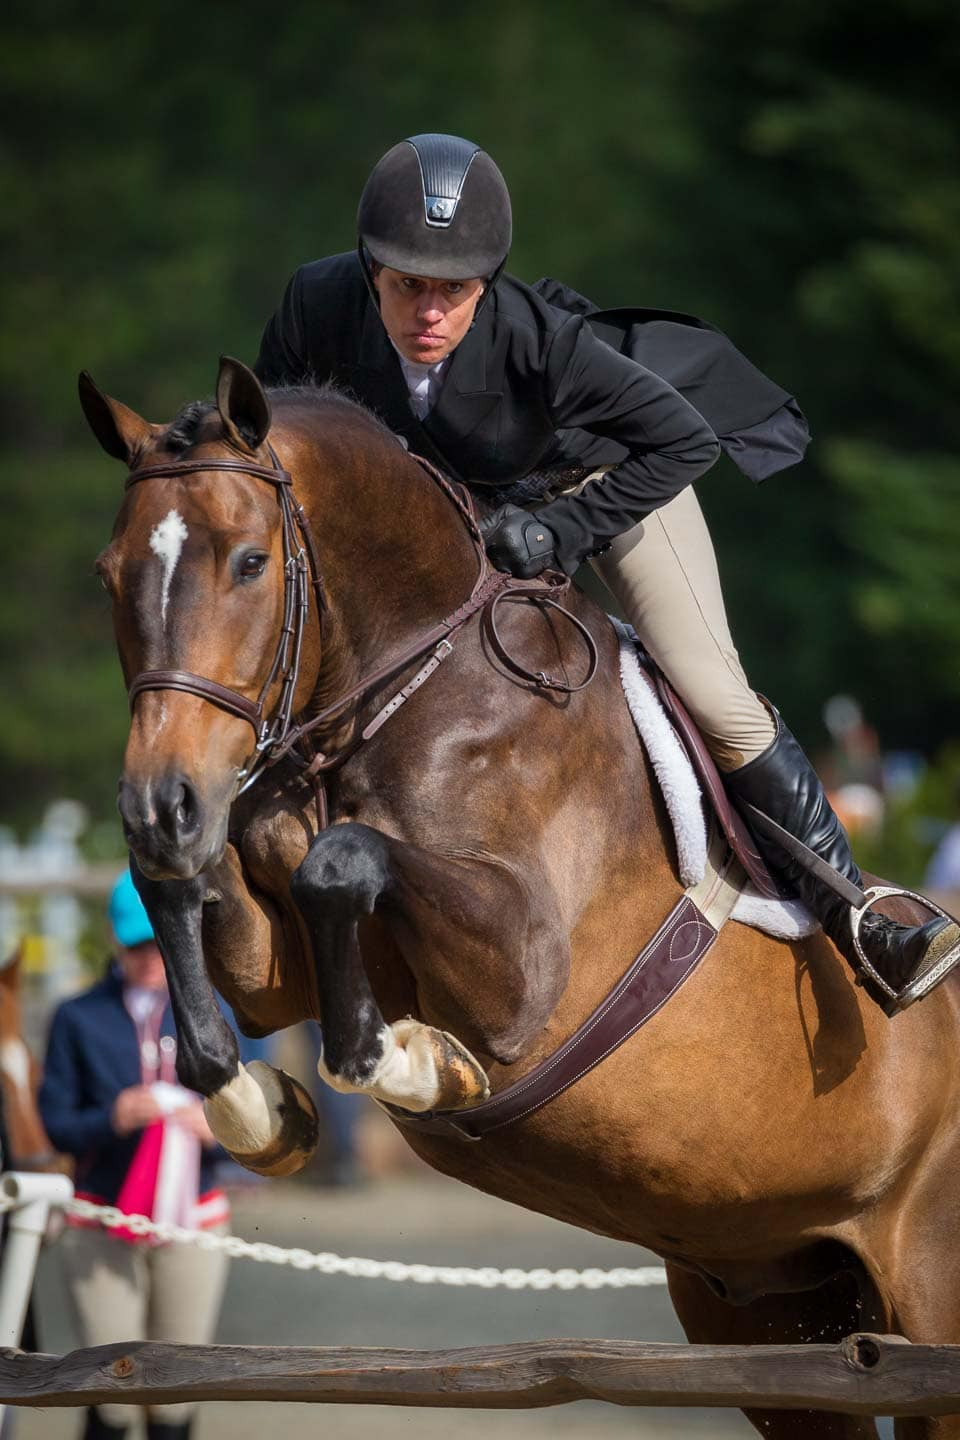 Professional equestrian has an intent expression while clearing a fence during Hunter Derby competition